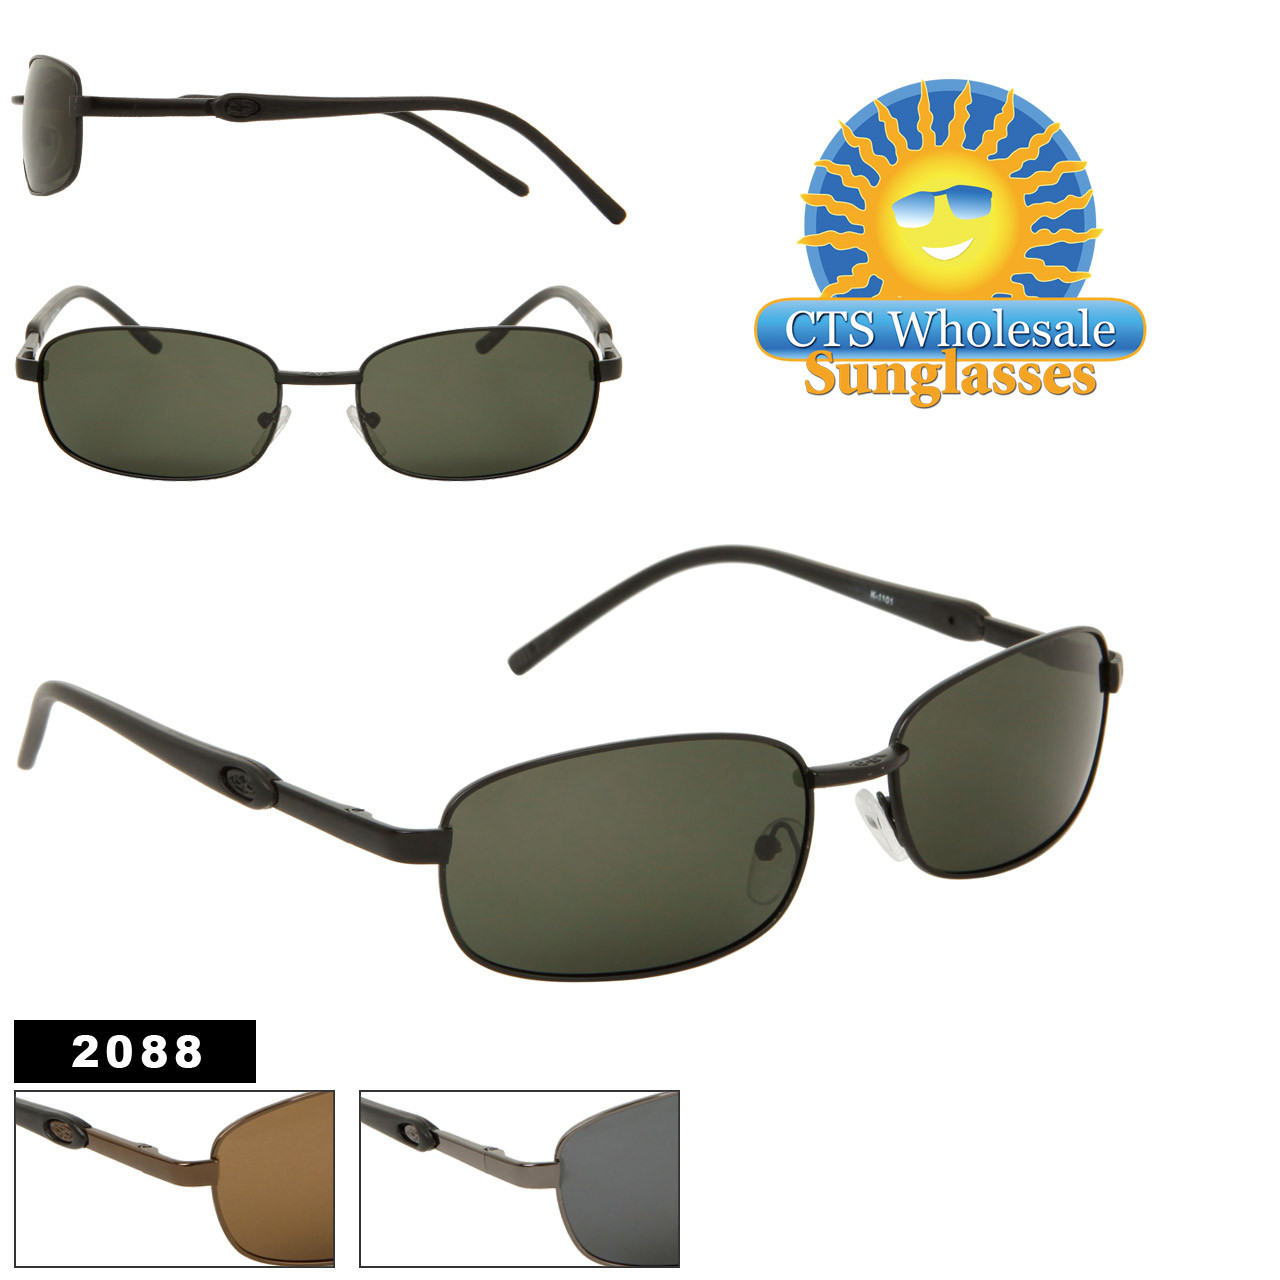 Polarized Wholesale Sunglasses - Style # 2088 Lenses Made in USA! (Assorted Colors) (12 pcs.)